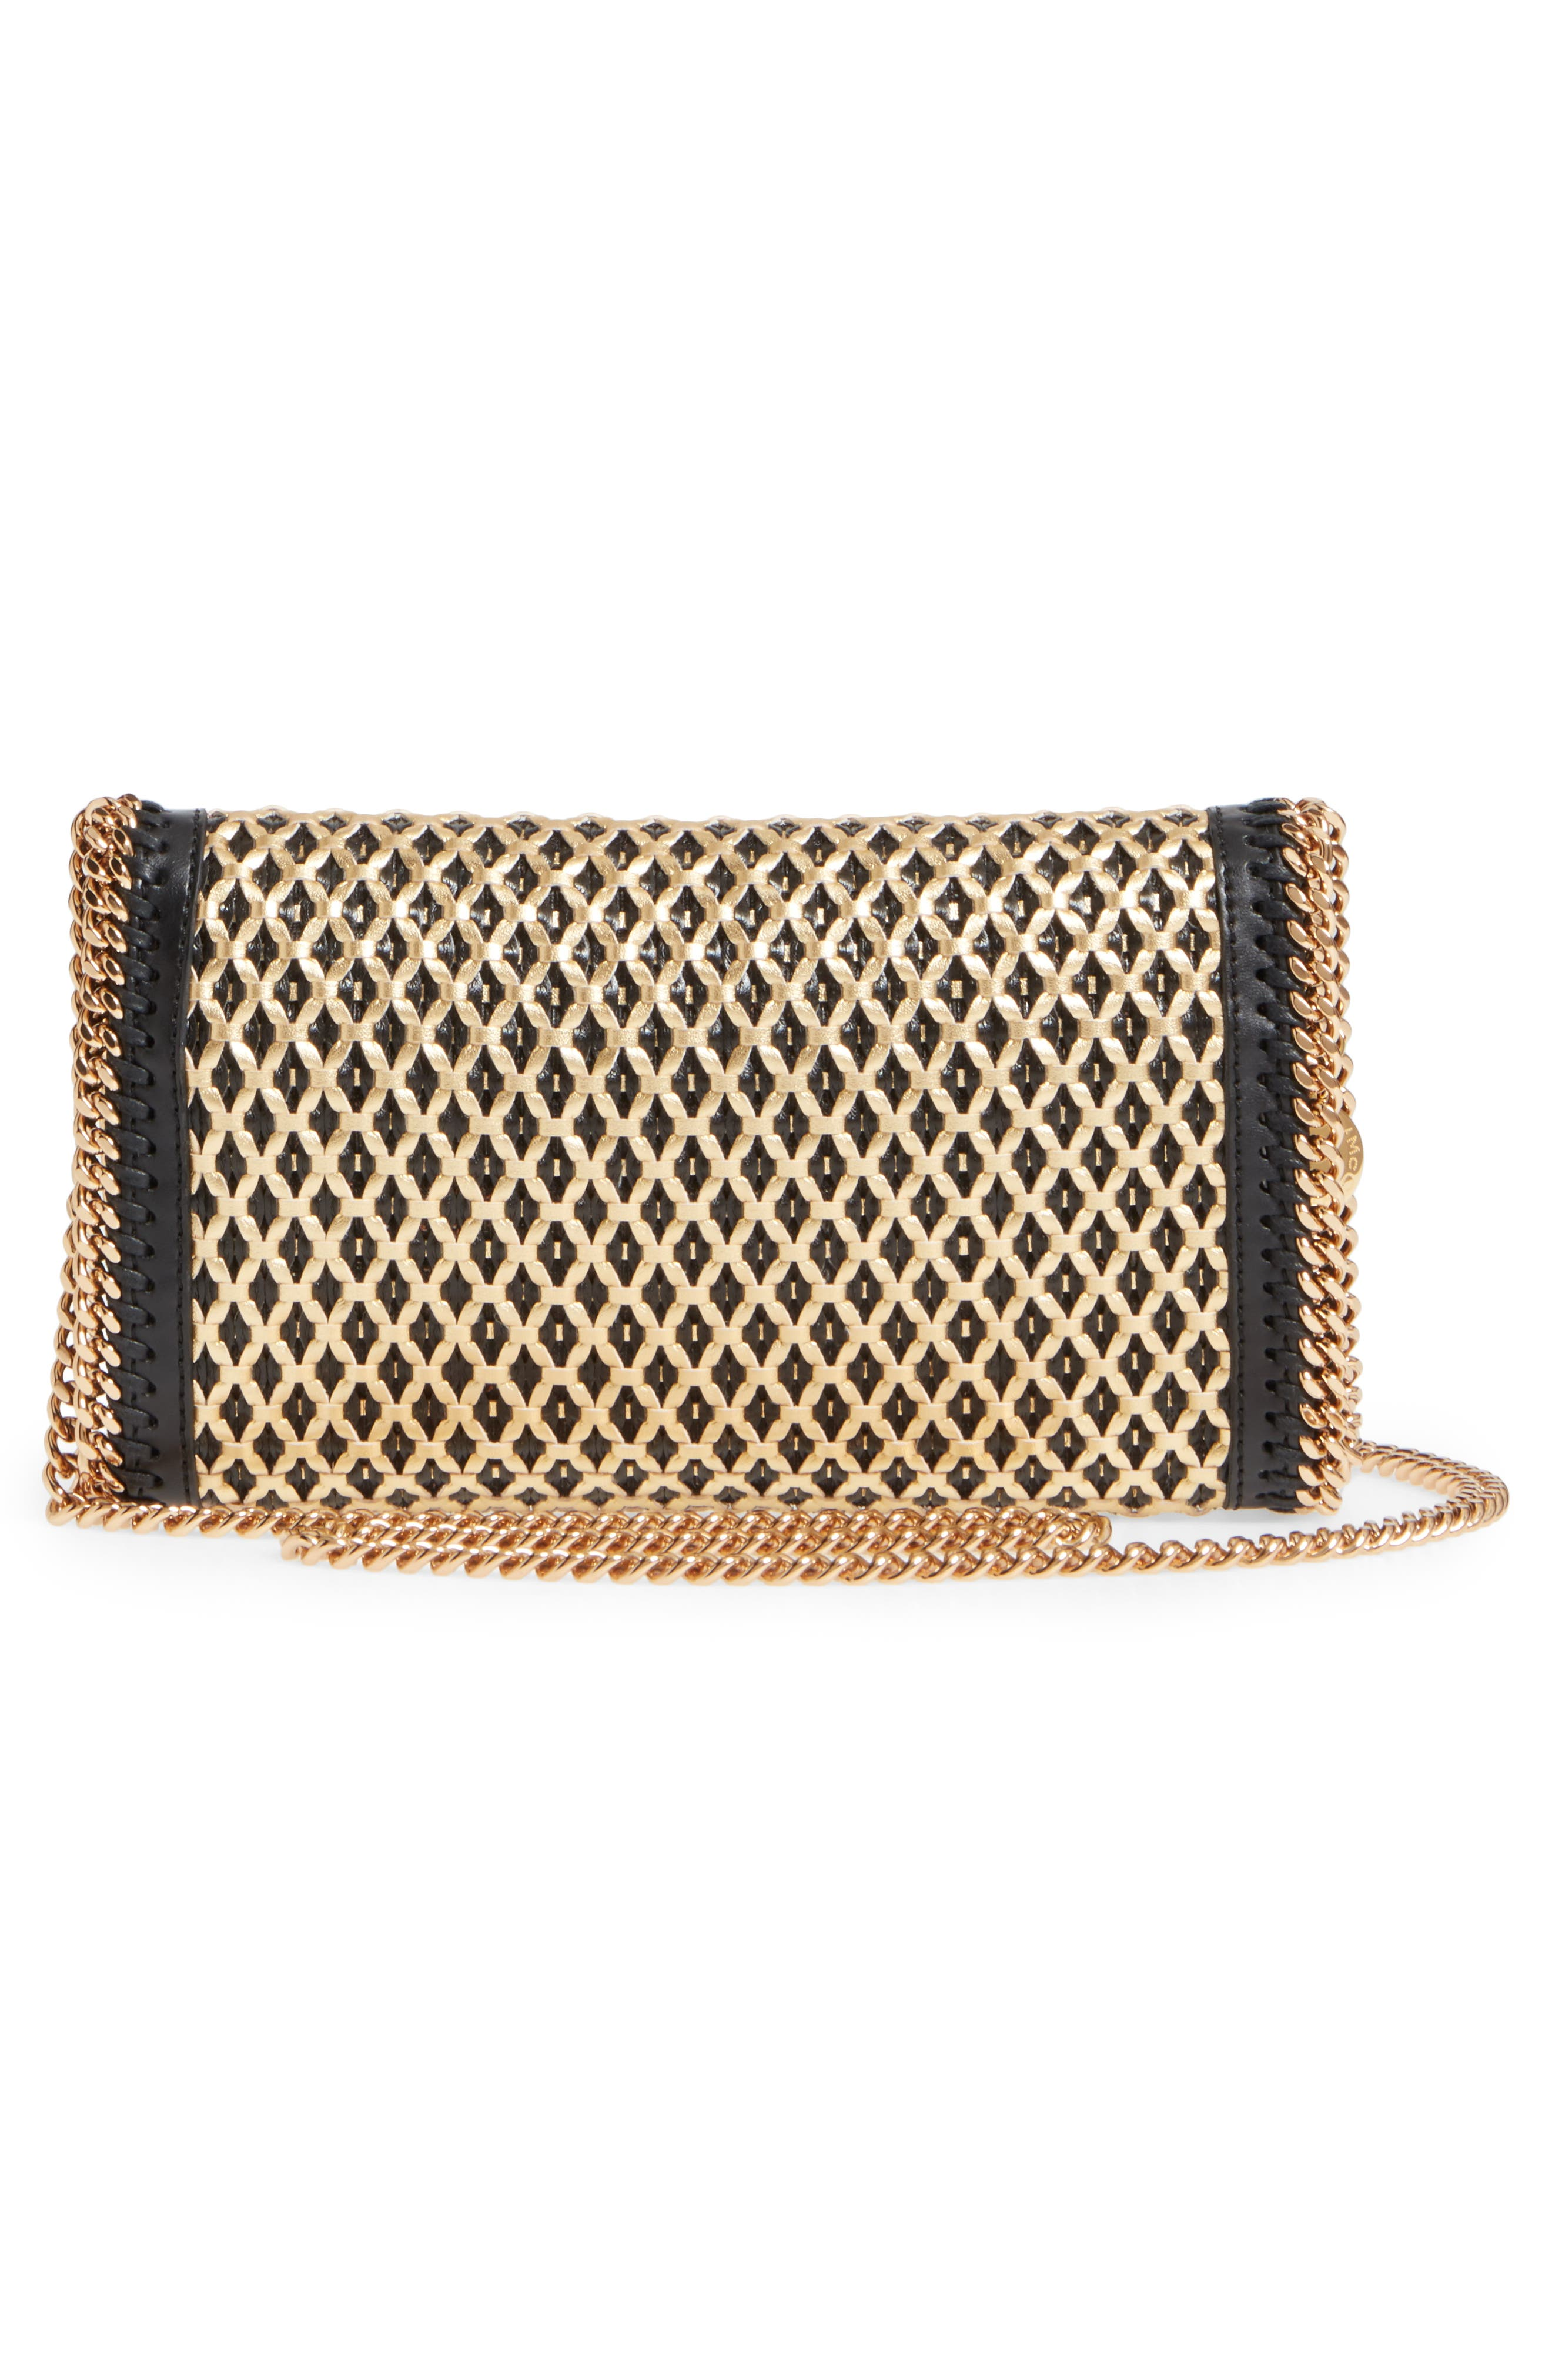 Falabella Woven Faux Leather Clutch,                             Alternate thumbnail 3, color,                             Black